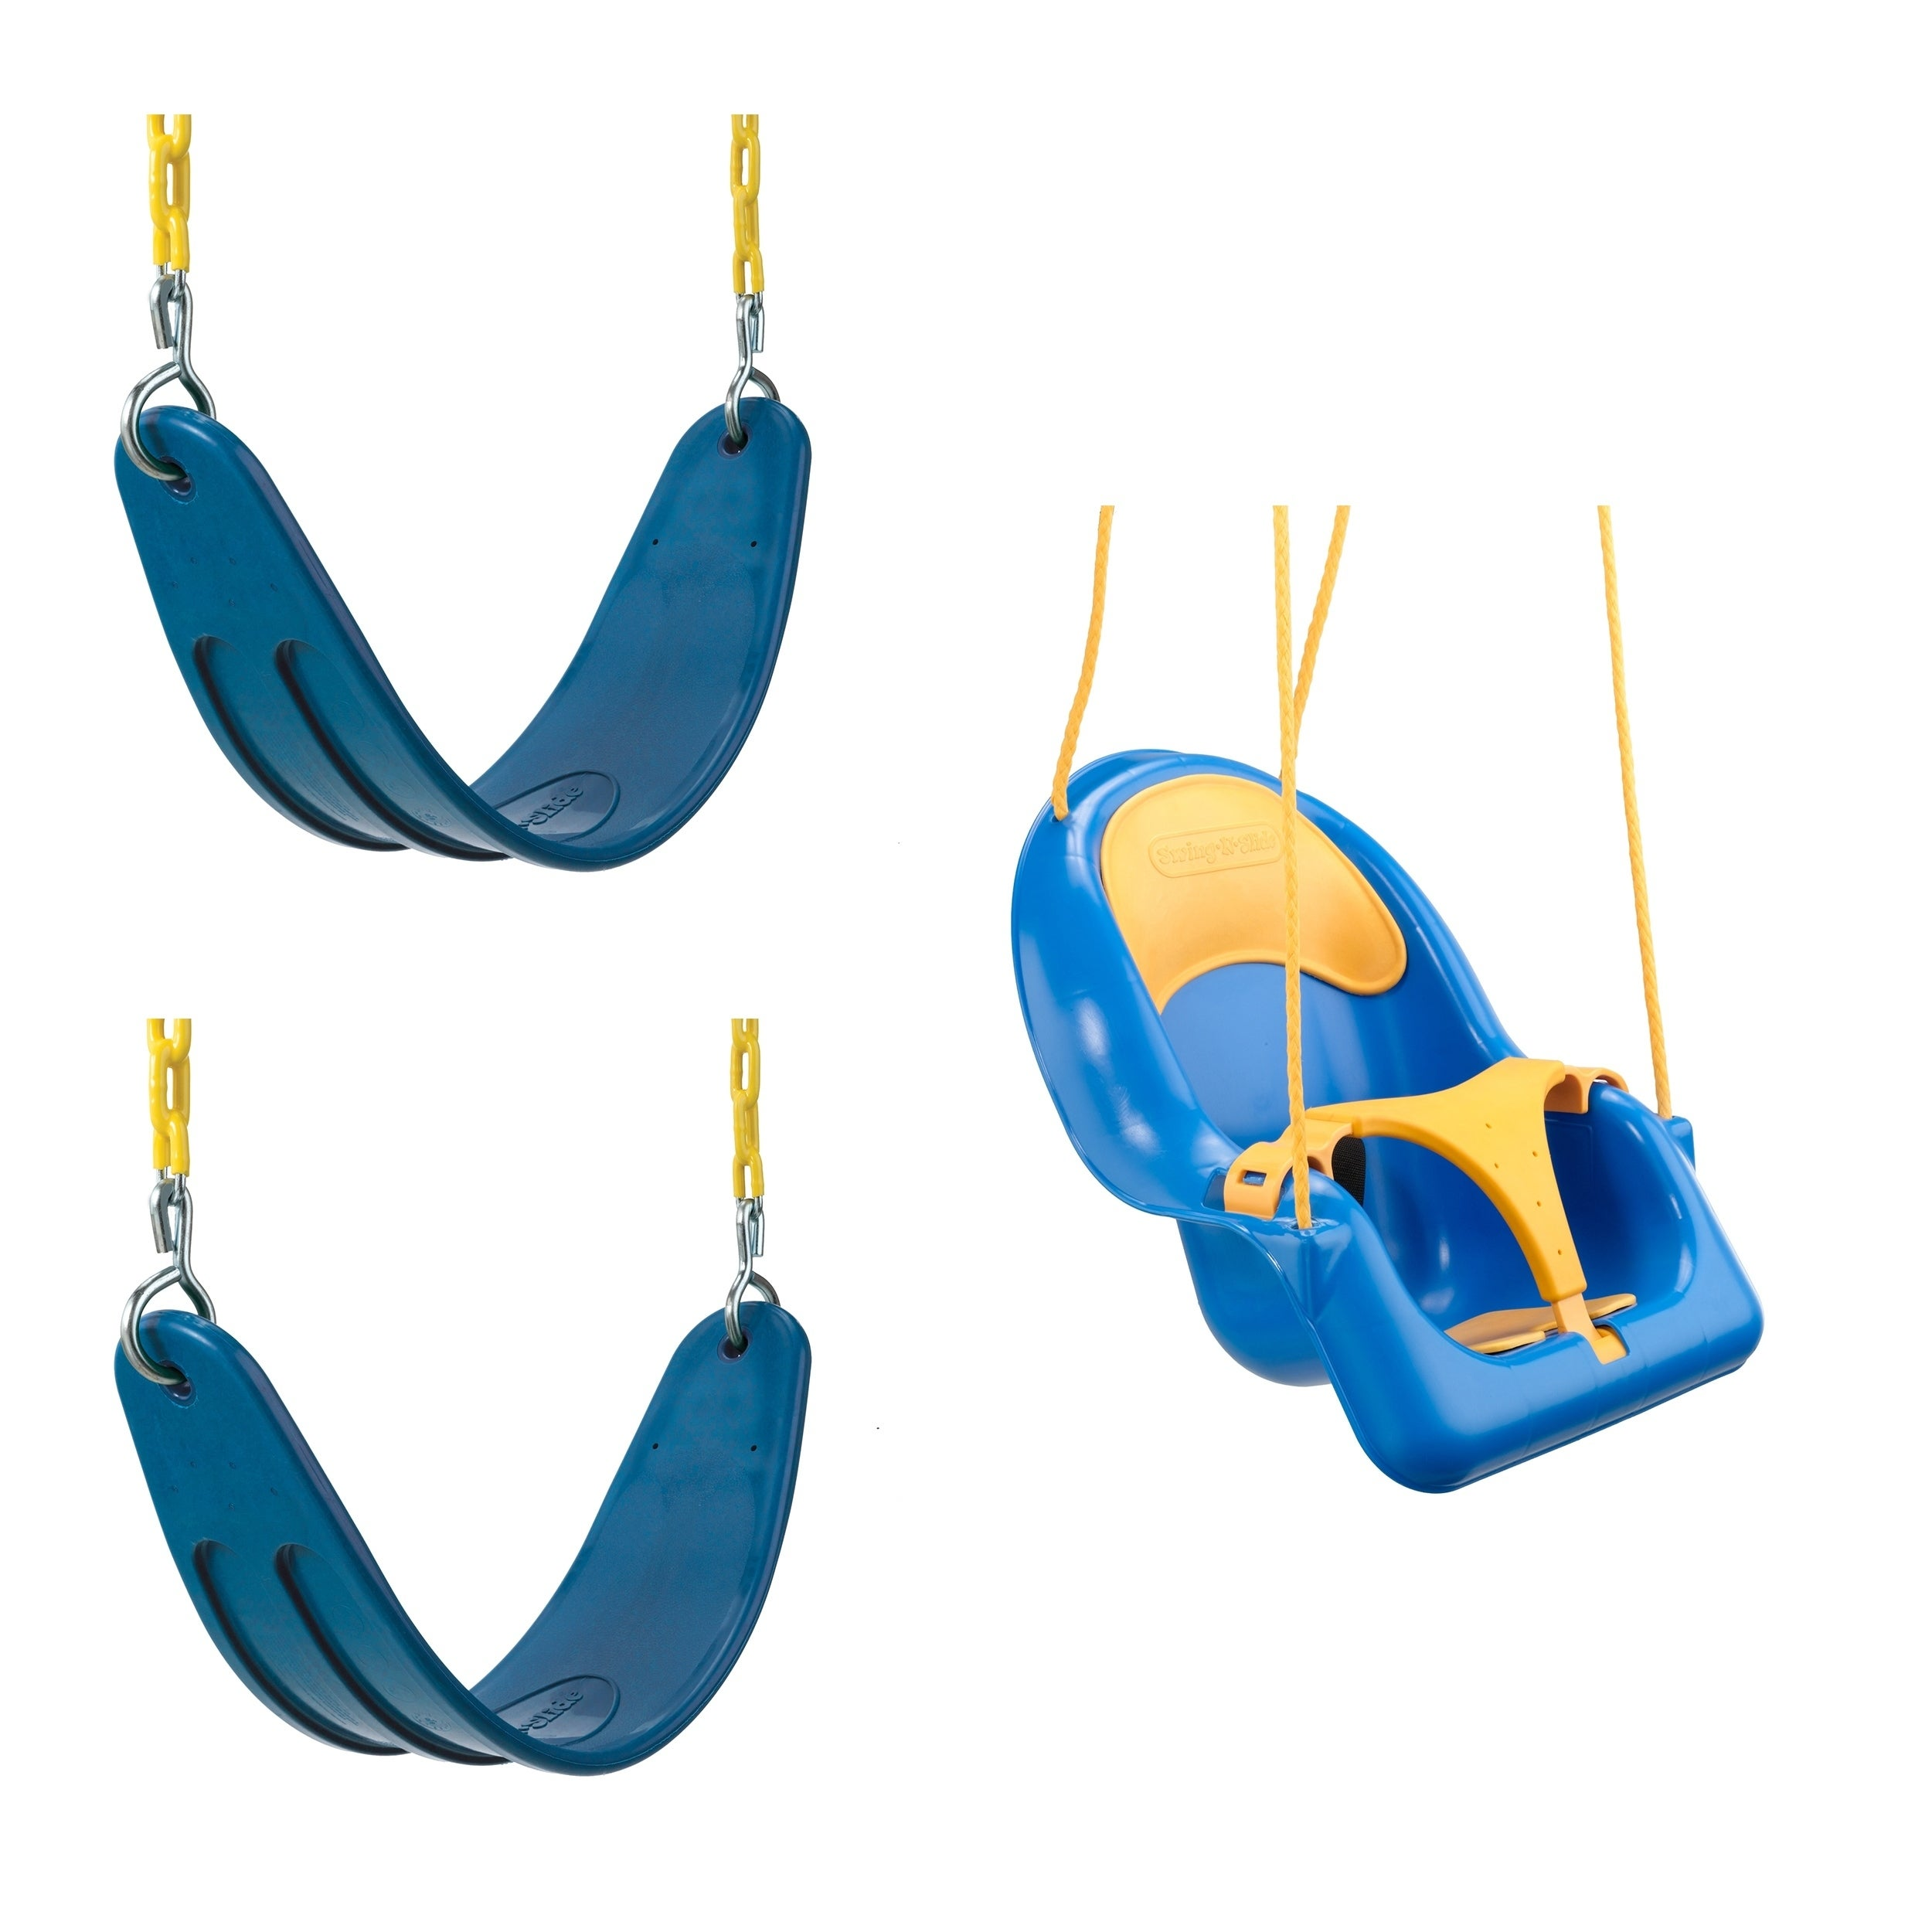 Green Swing-N-Slide WS 5100 2 Pack of Green Swing Seats with Ring//Trapeze Combo Swing Swing Set Refresher Bundle